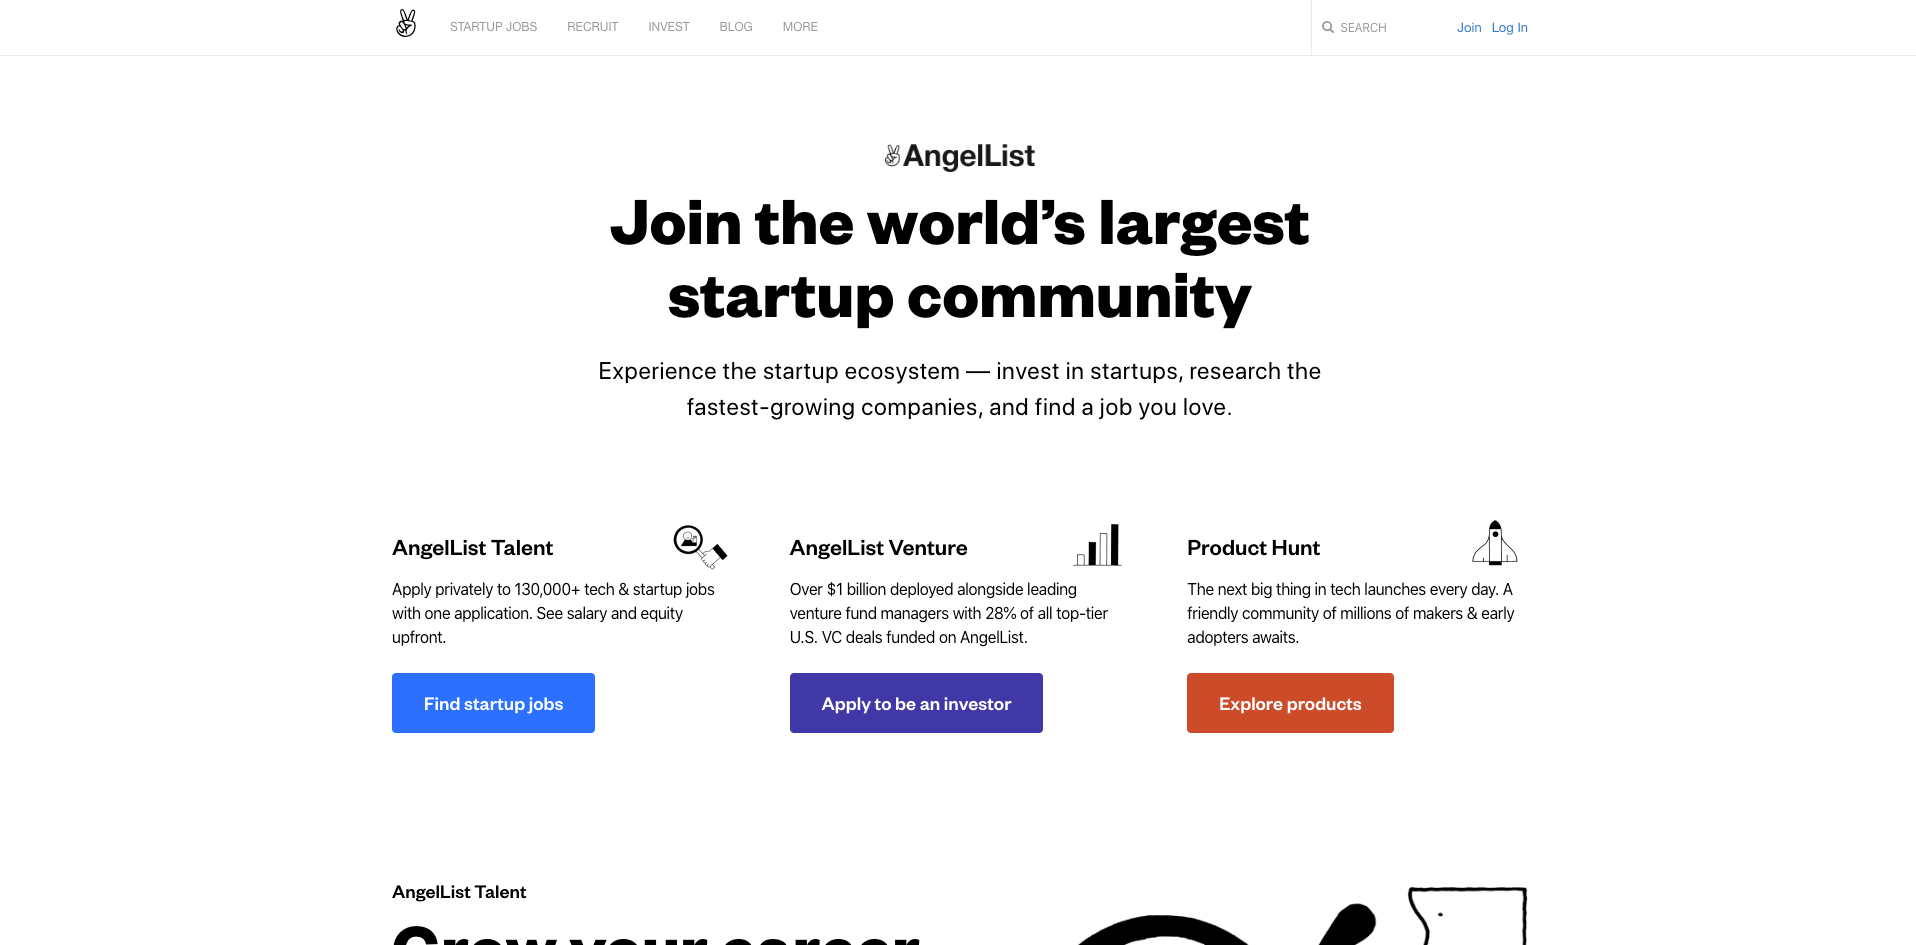 angelList website homepage screenshot